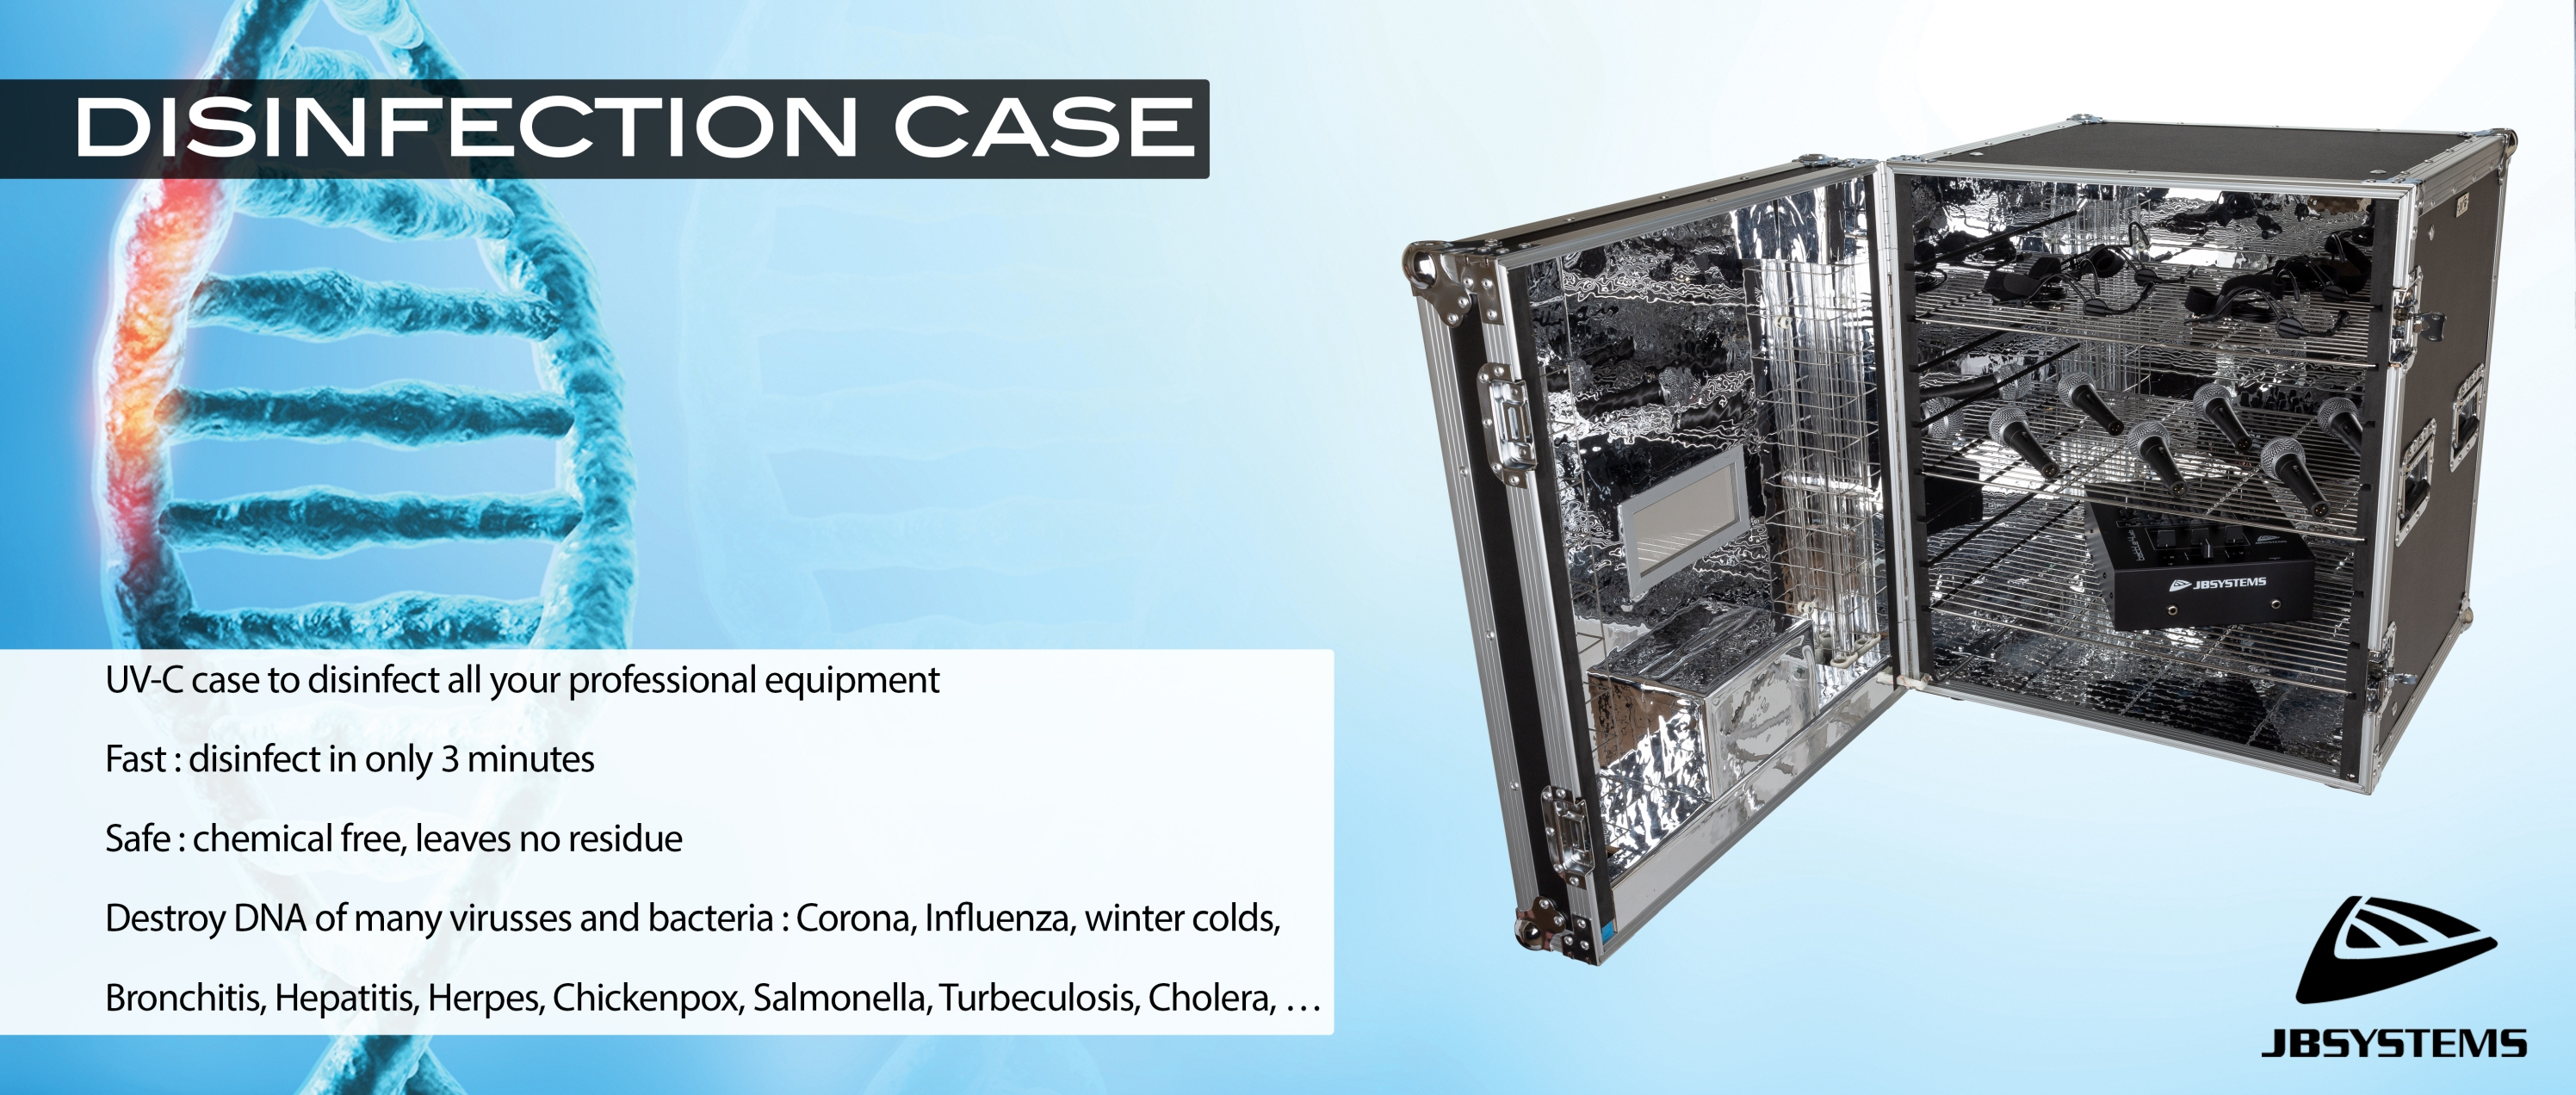 JB SYSTEMS : DISINFECTION CASE